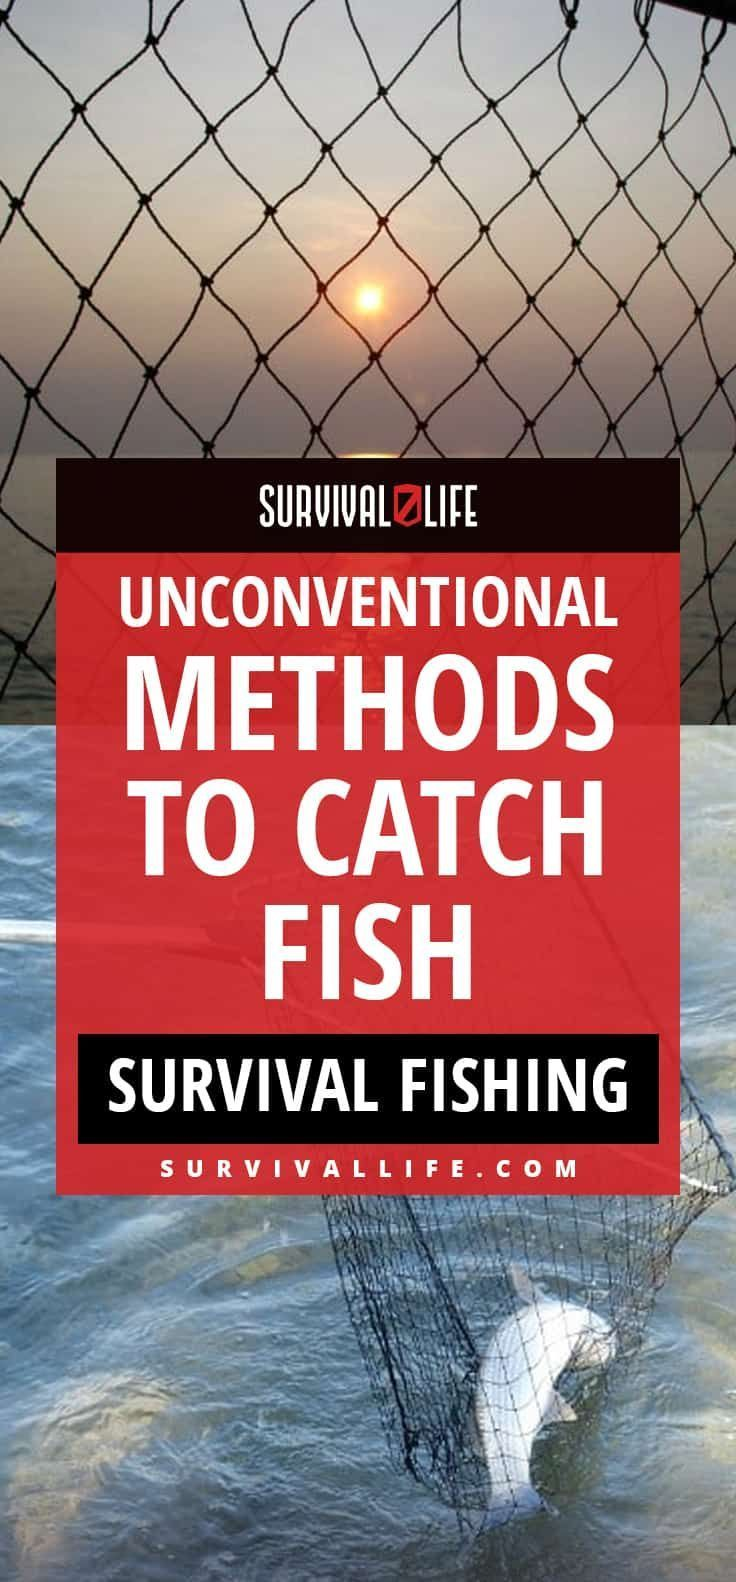 Survival Fishing | Unconventional Methods To Catch Fish #Prepper #SurvivalFood